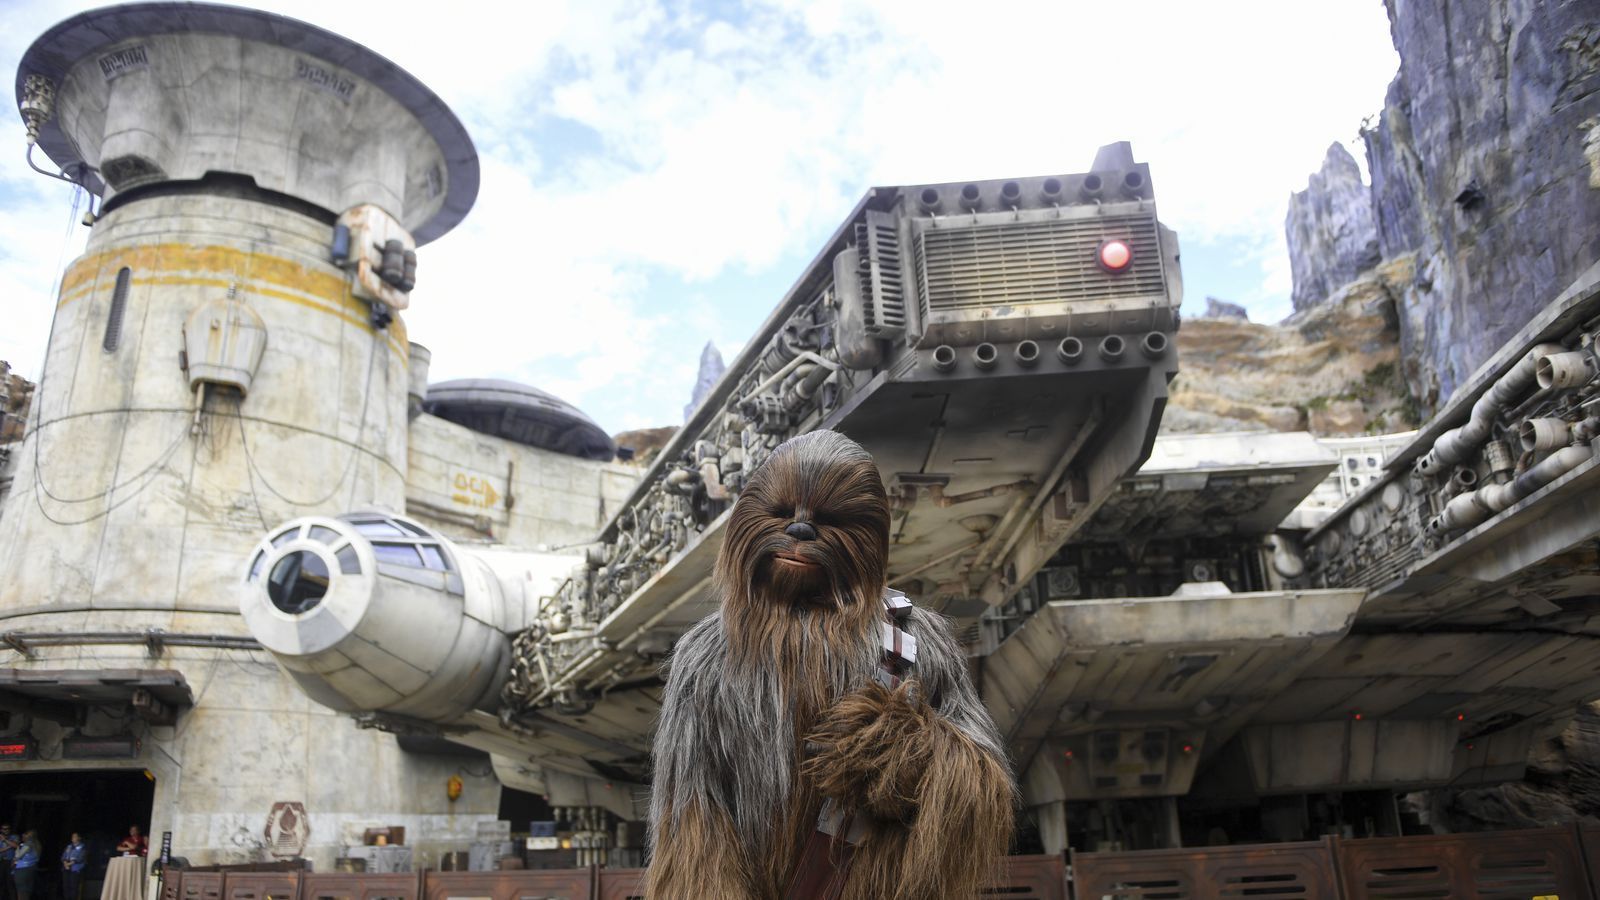 Disney S Star Wars Land Opened As Dorian Approached Keeping Attendance Light Locals Loved It